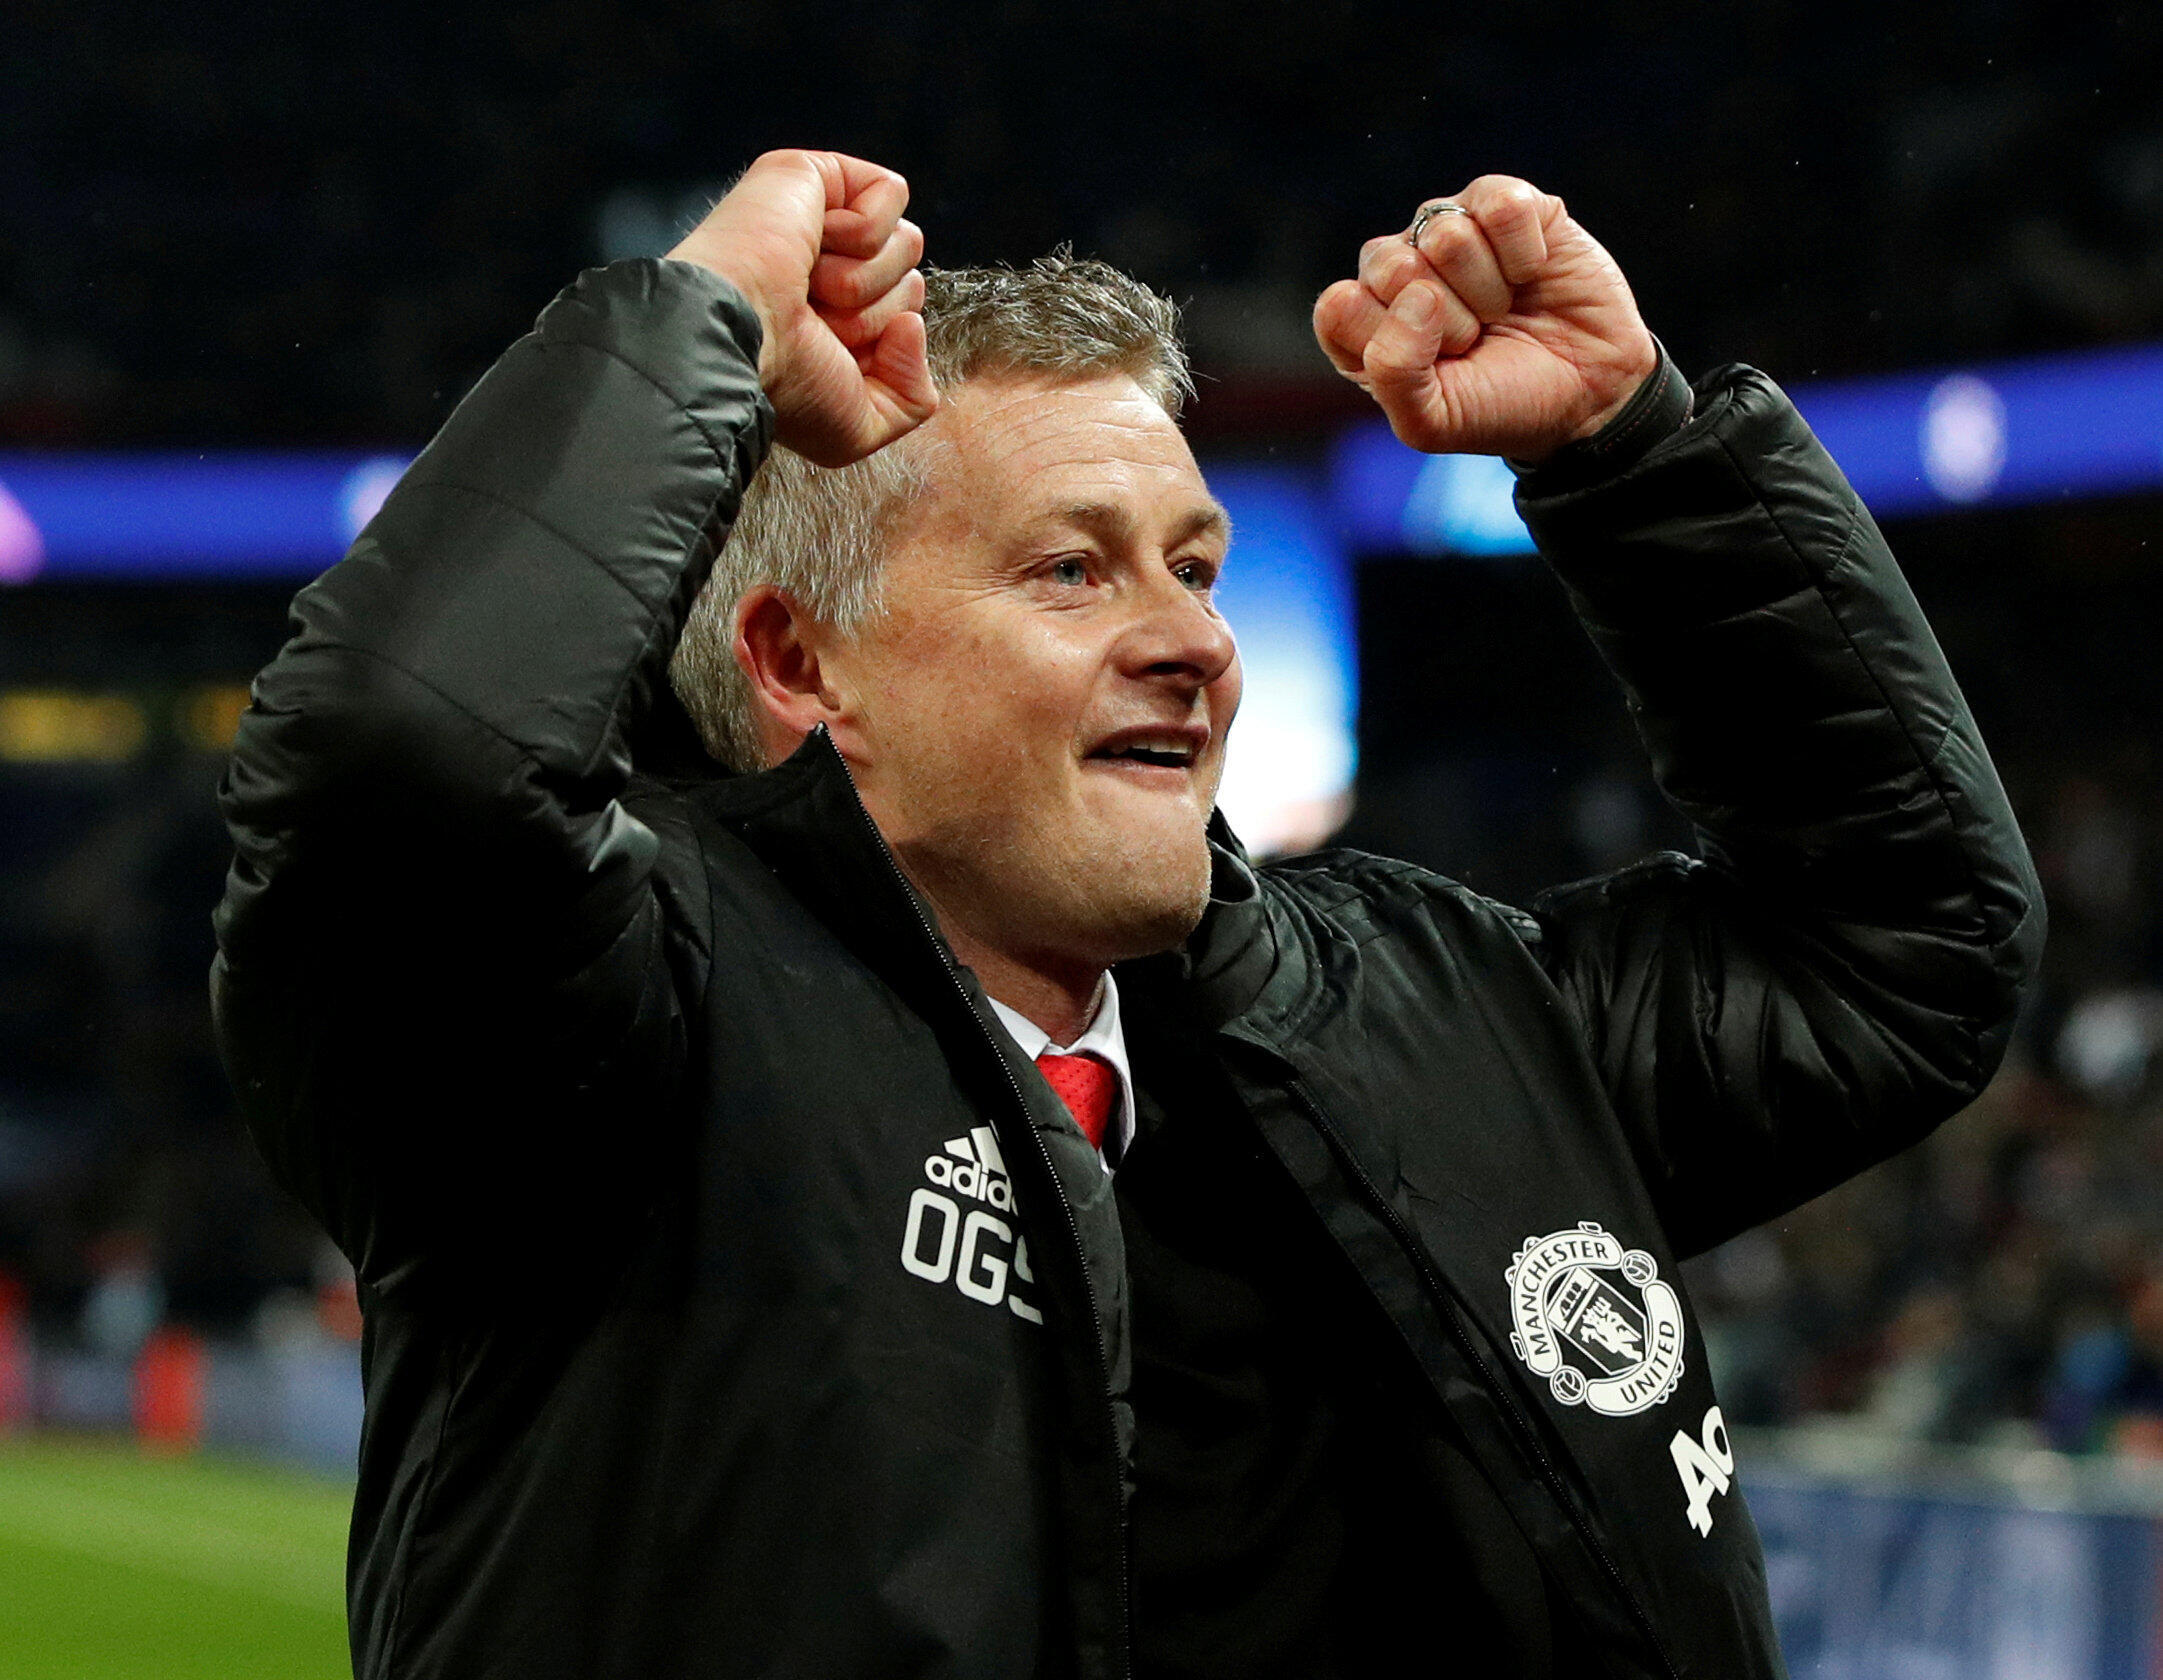 Ole Gunnar Solskjaer is trying to become the first coach to steer Manchester United to the Premier League title since Sur Alex Ferguson in 2013.